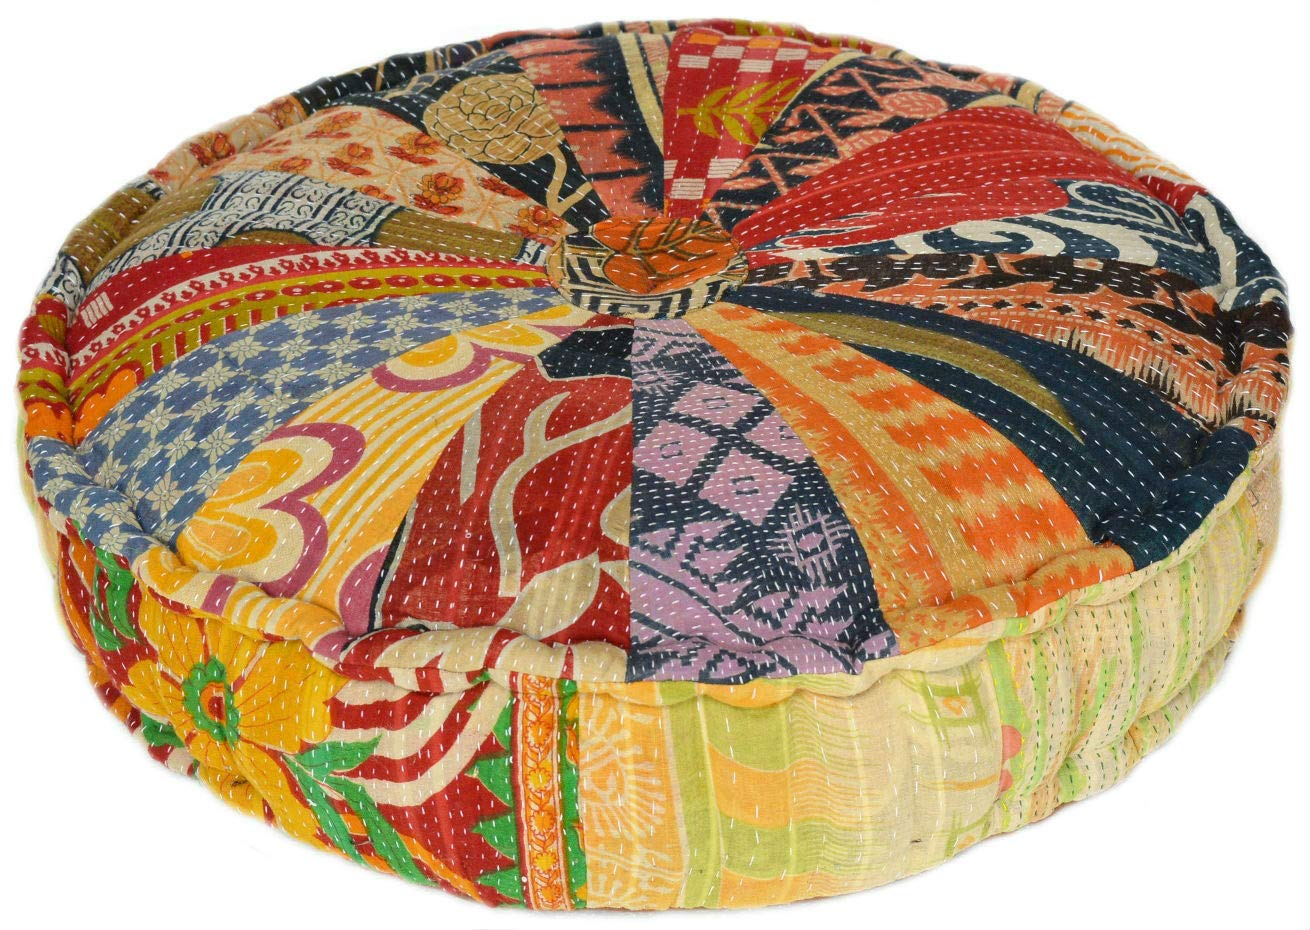 MARUDHARA RANGILA Stuffed Indian Vintage Kantha Pizza Patch Floor Cushion; Pouf Ottoman; Round Pouf